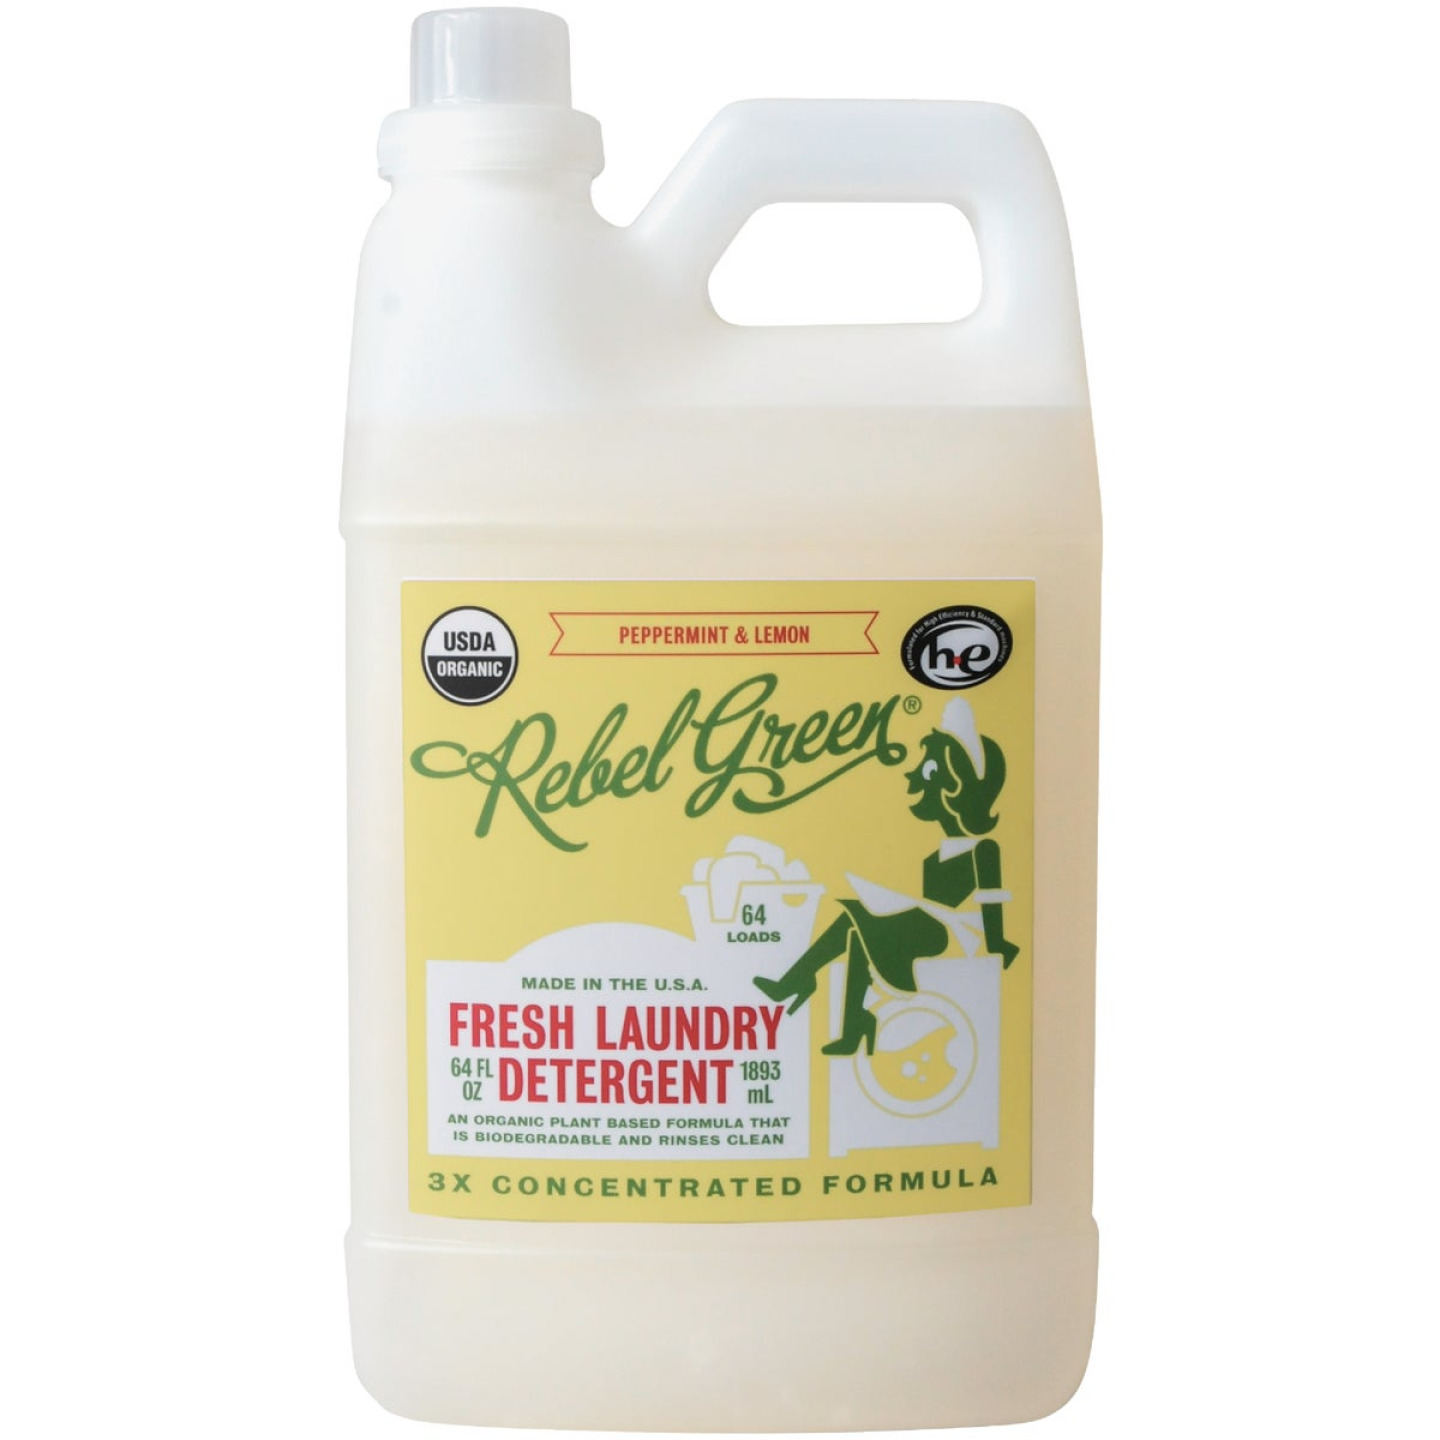 Rebel Green 64 Oz. 64-Load Peppermint & Lemon Laundry Detergent Image 1